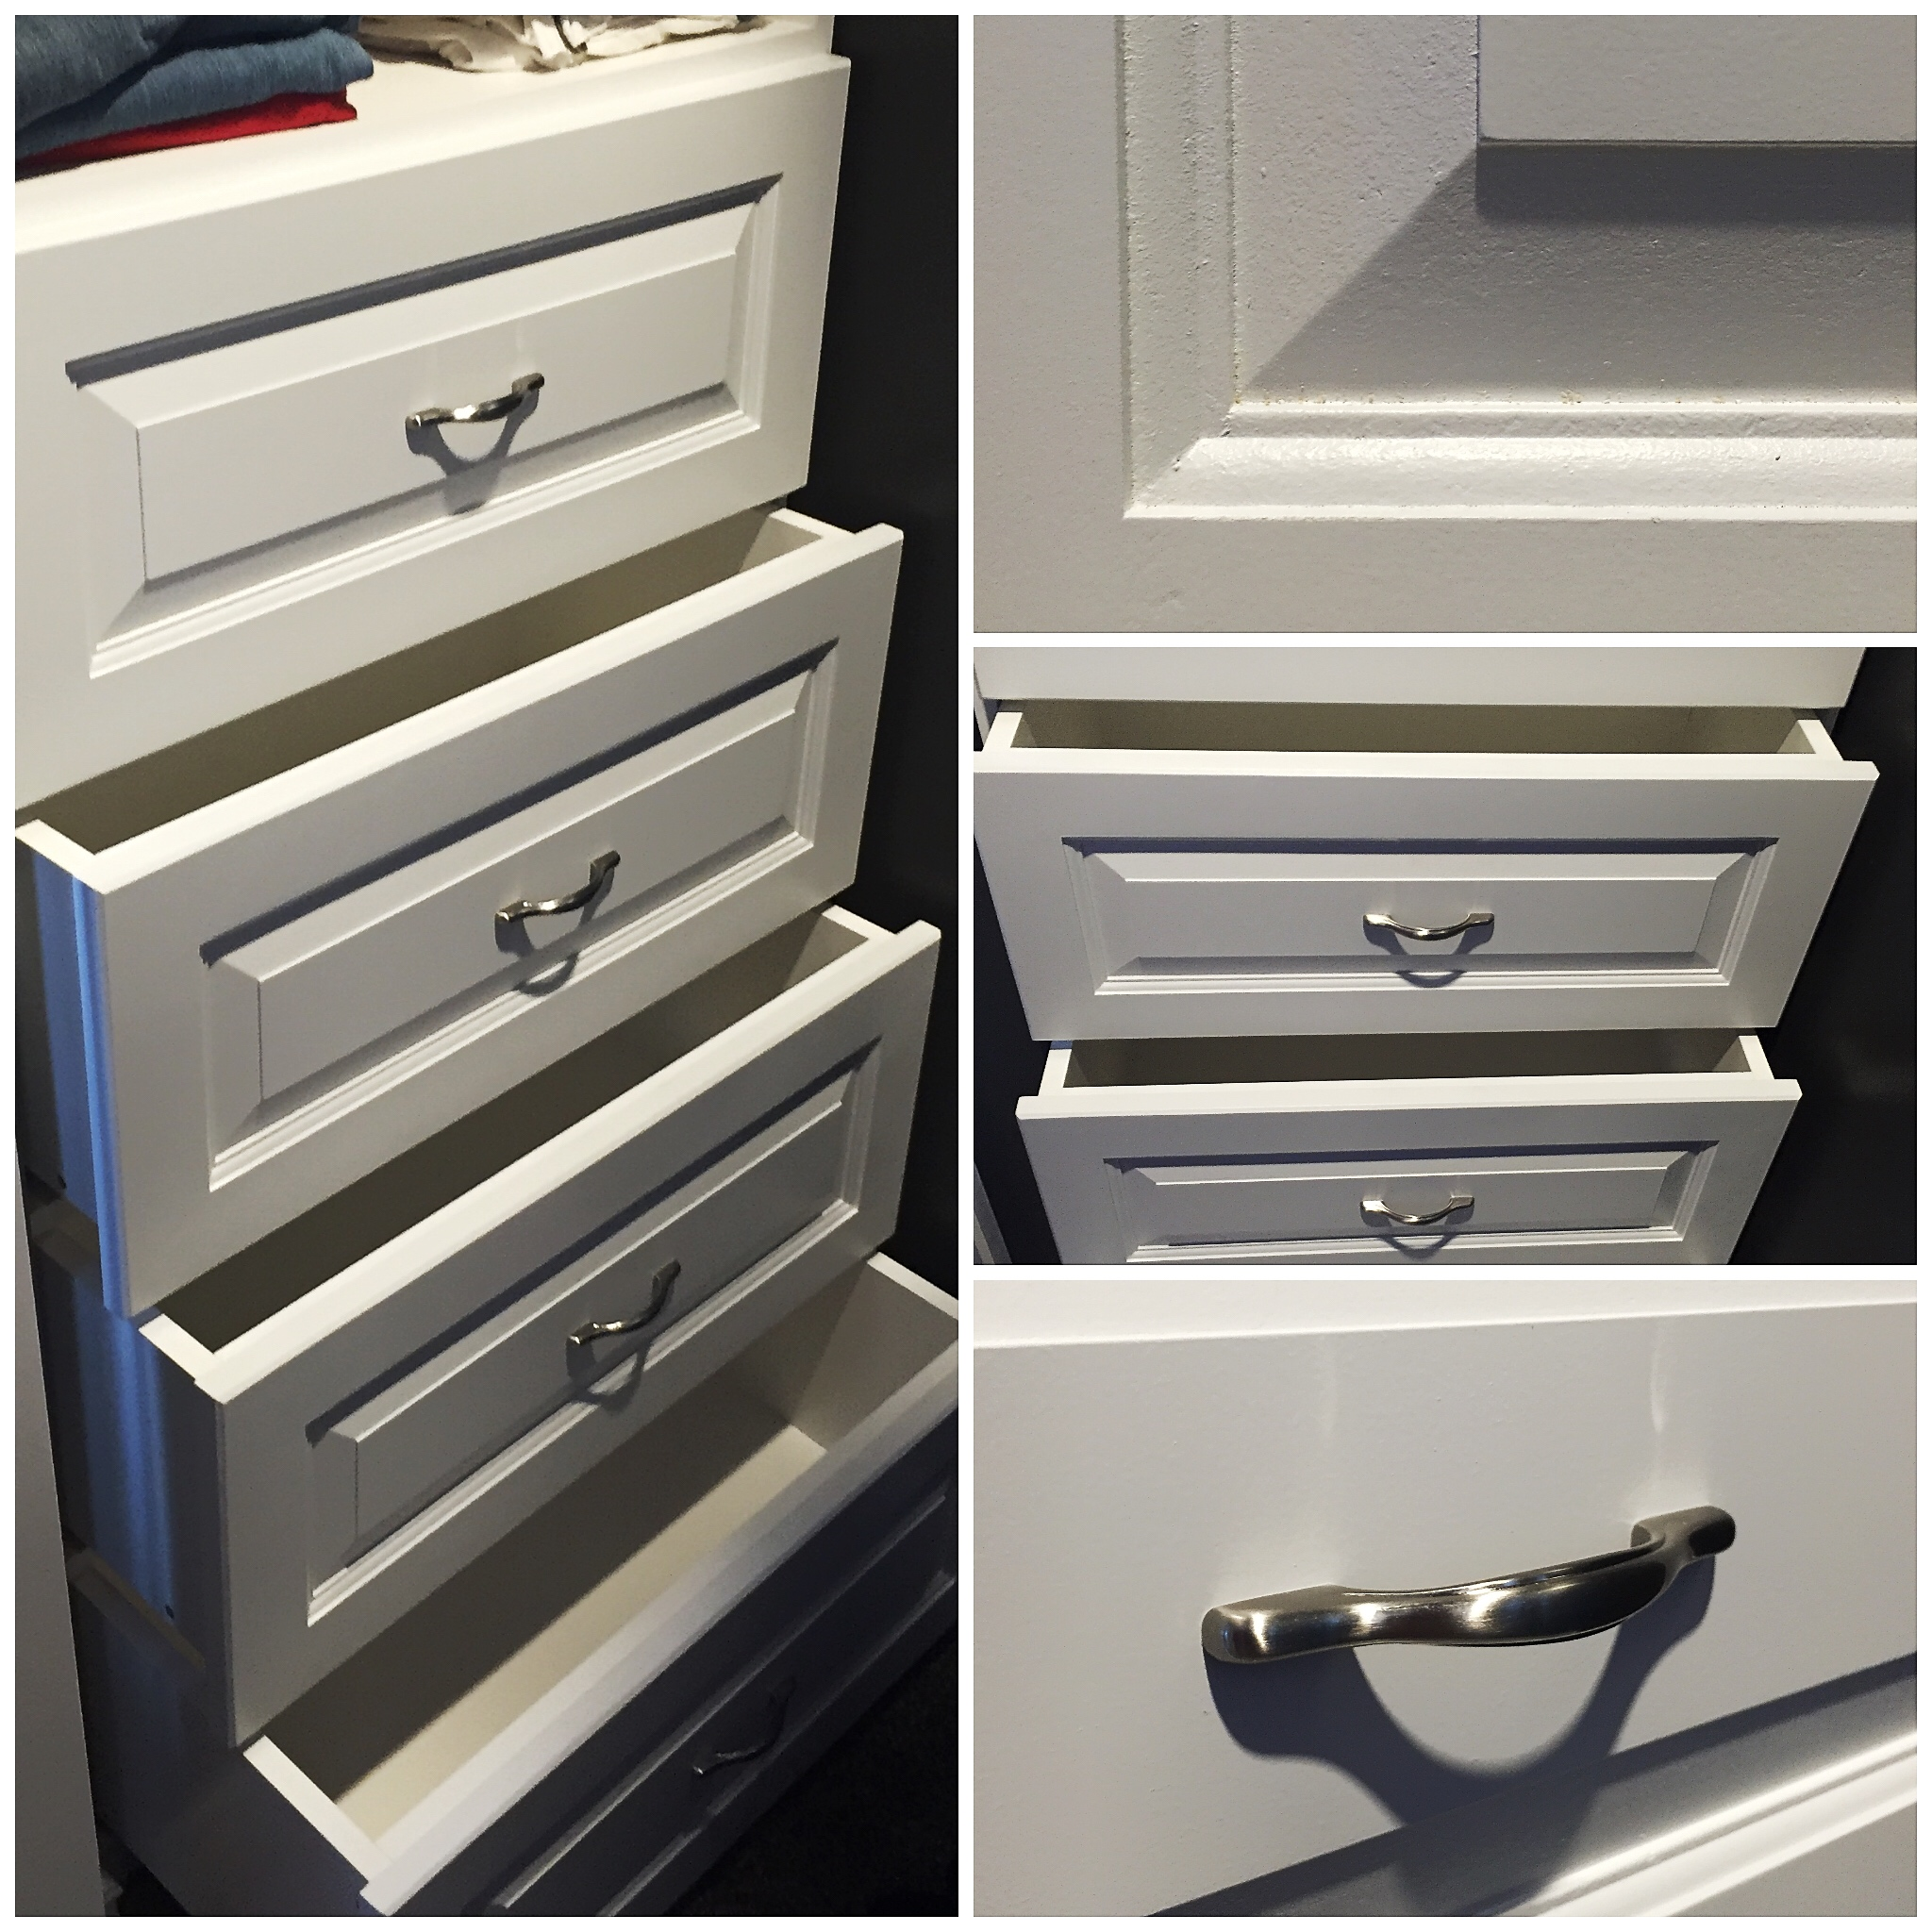 Walk-in Closet Shelf with Drawers